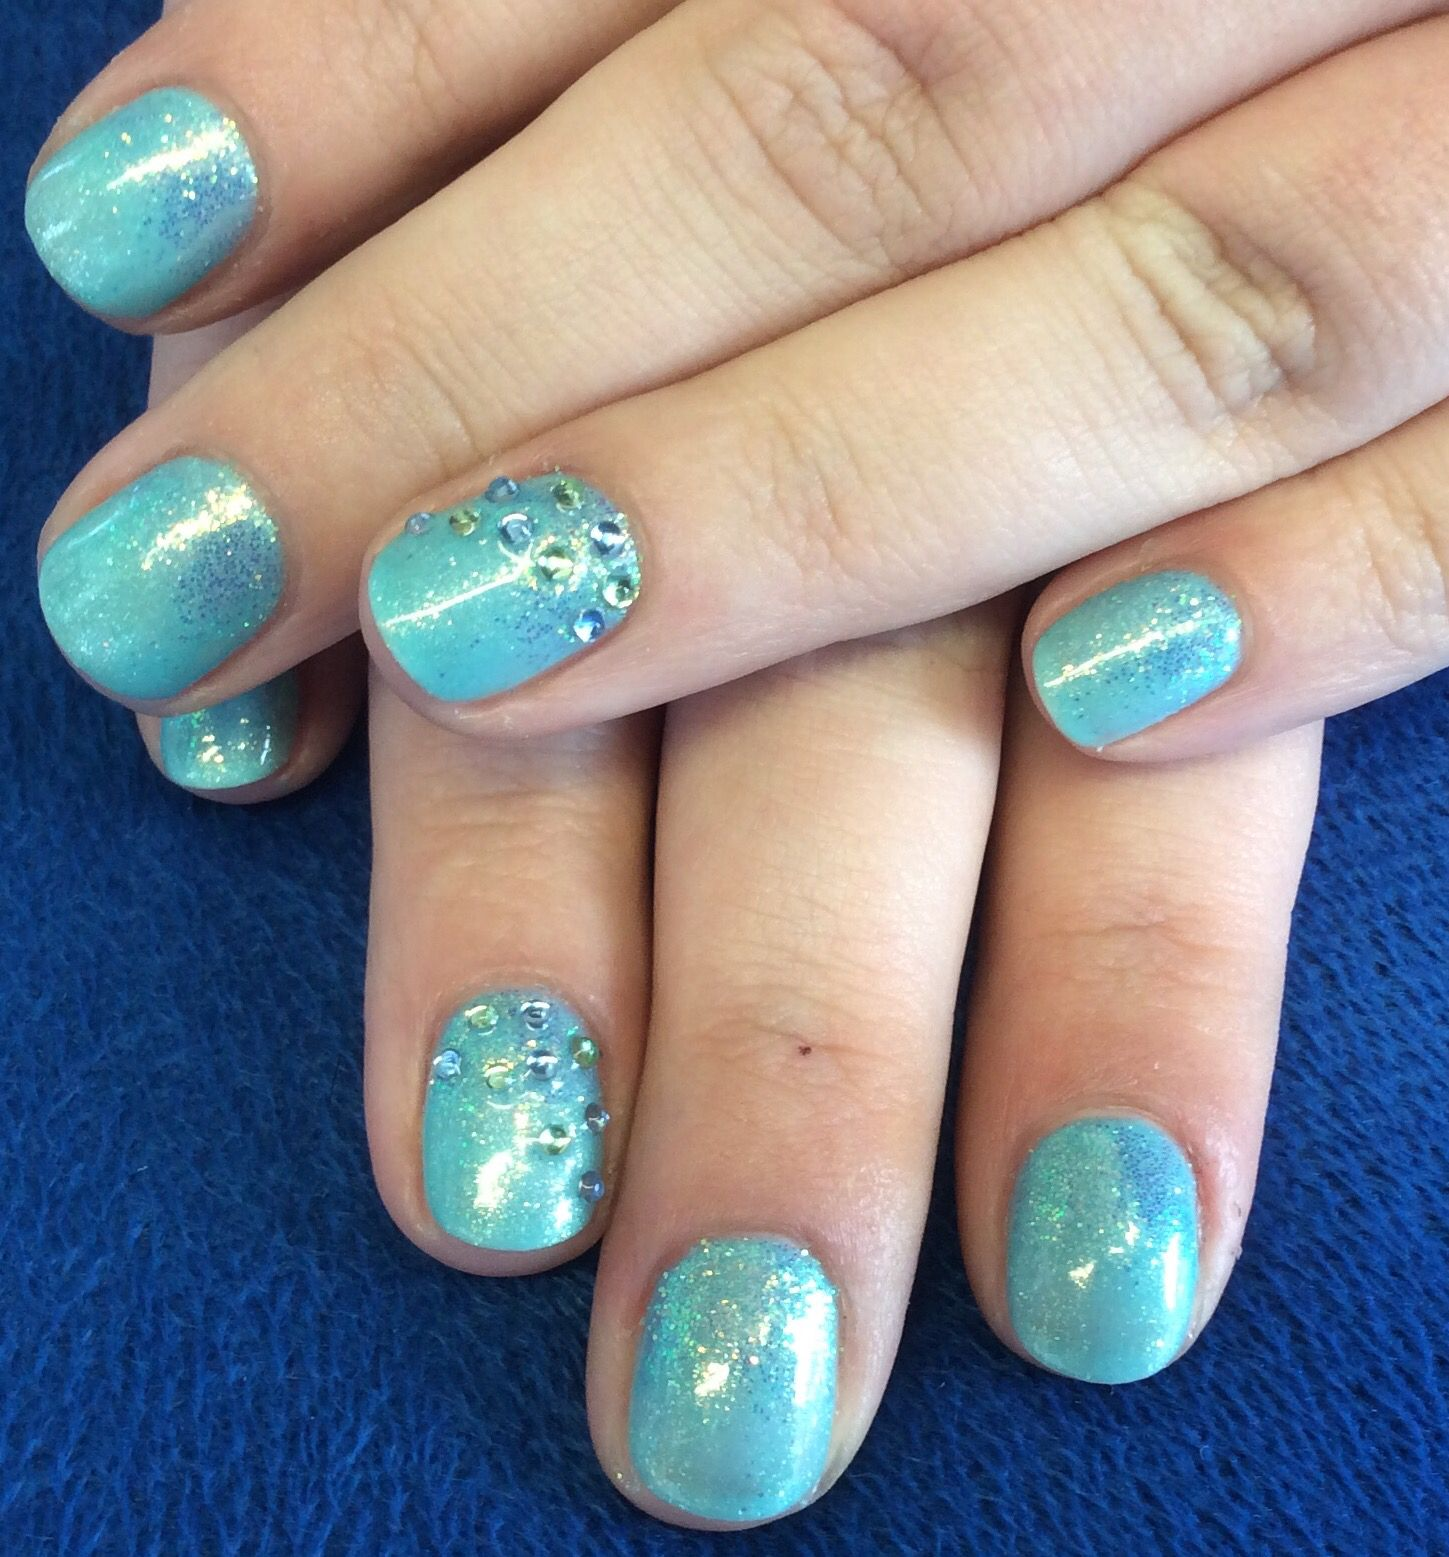 'Party at the Palace' Gelish with glitter and gems by Tori